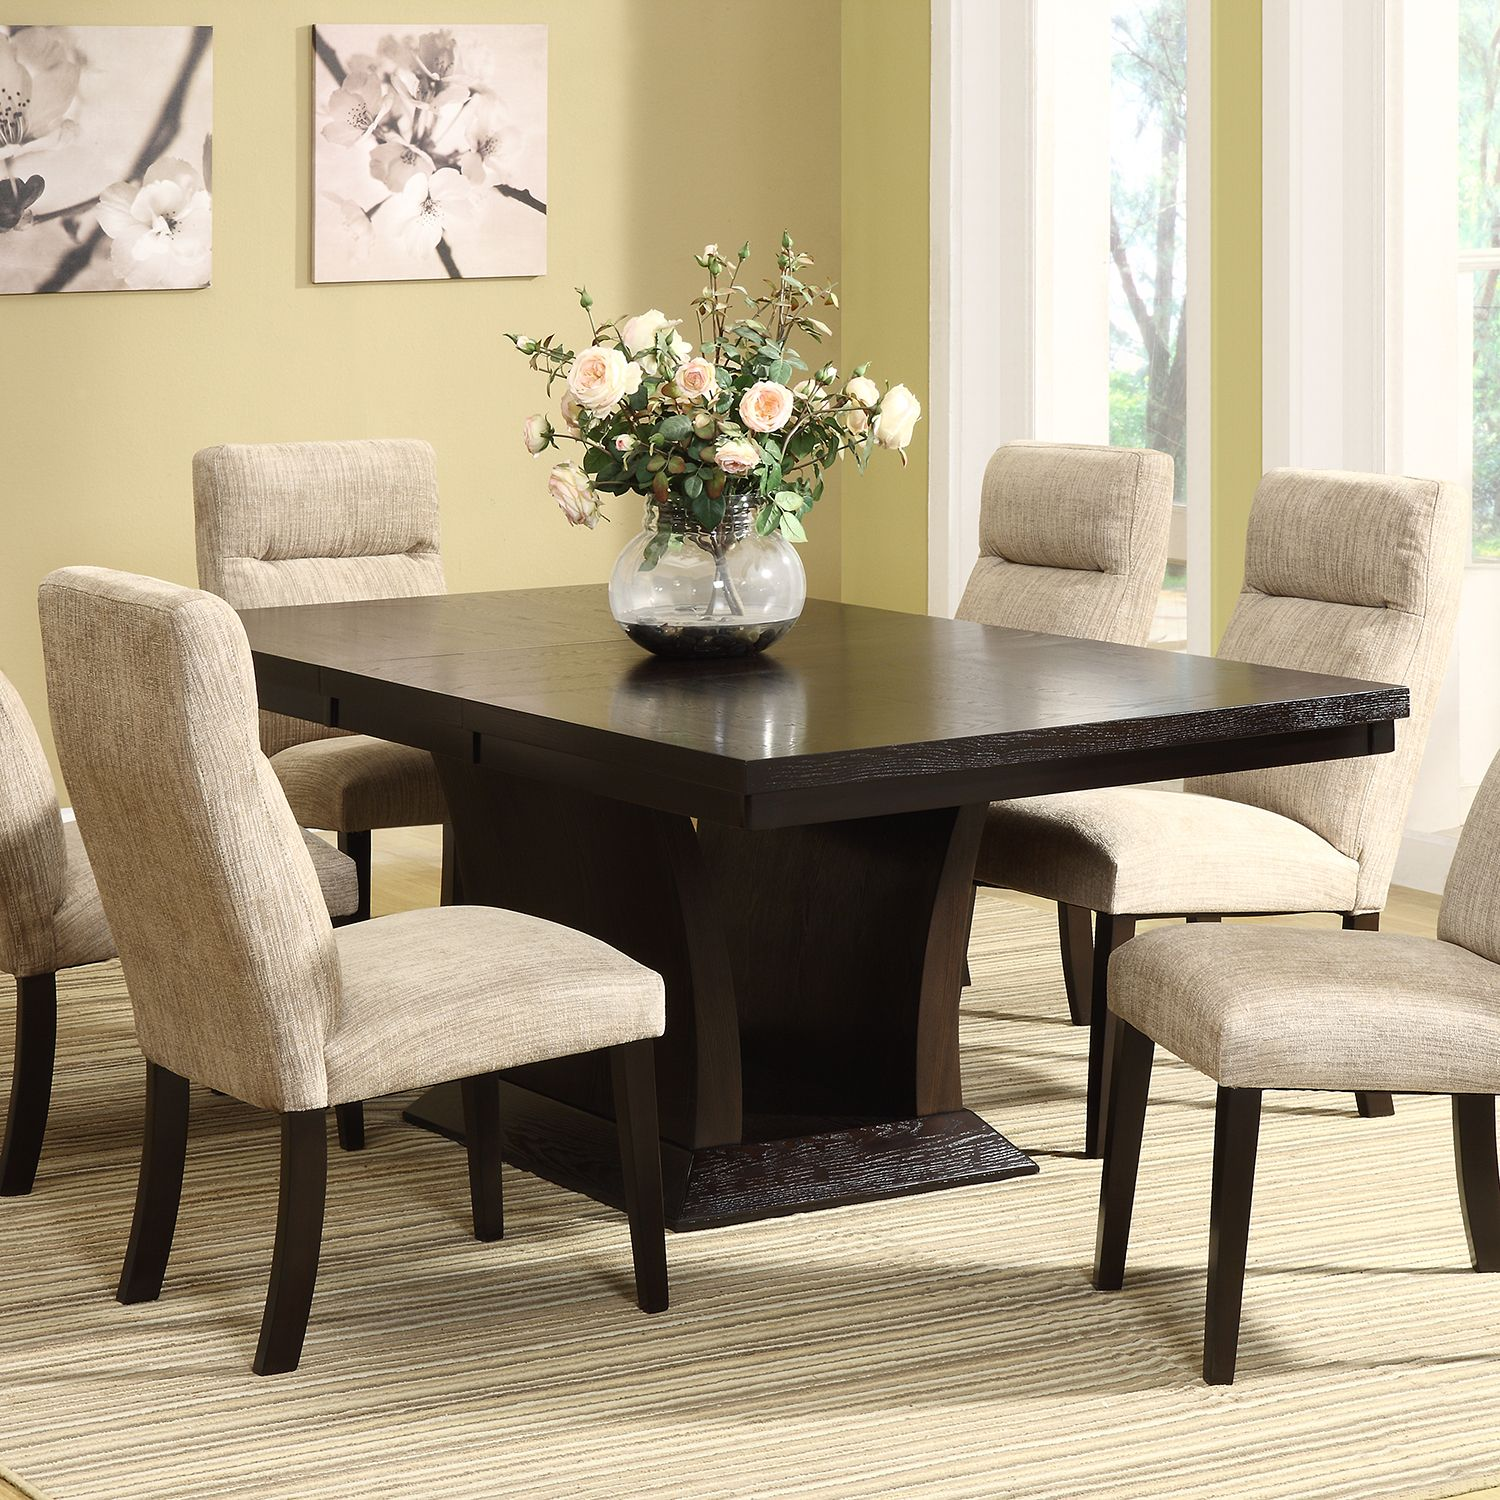 The Charles dining table from Tribecca Home comes with a butterfly  extension leaf, so you